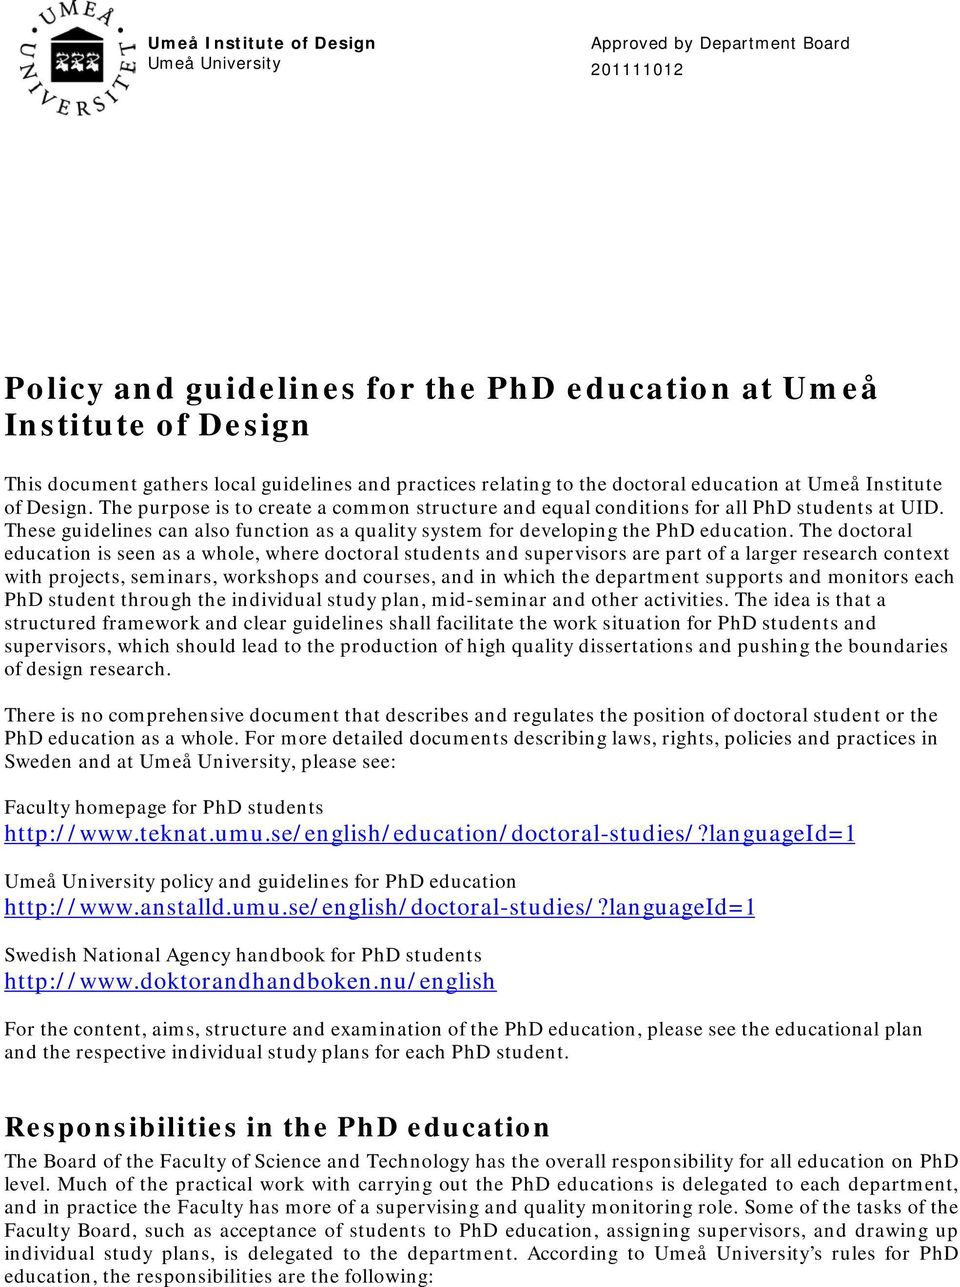 These guidelines can also function as a quality system for developing the PhD education.